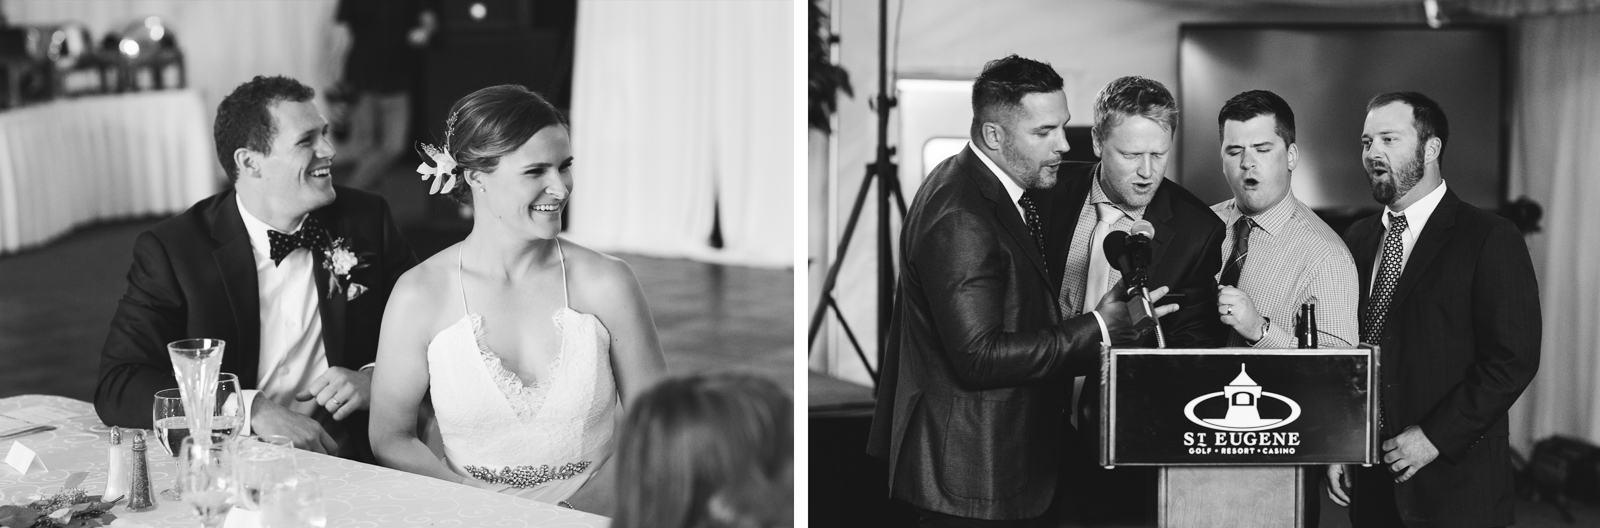 69-willow_and_wolf_photography_nicole_and_gary_cranbrook_wedding_blog